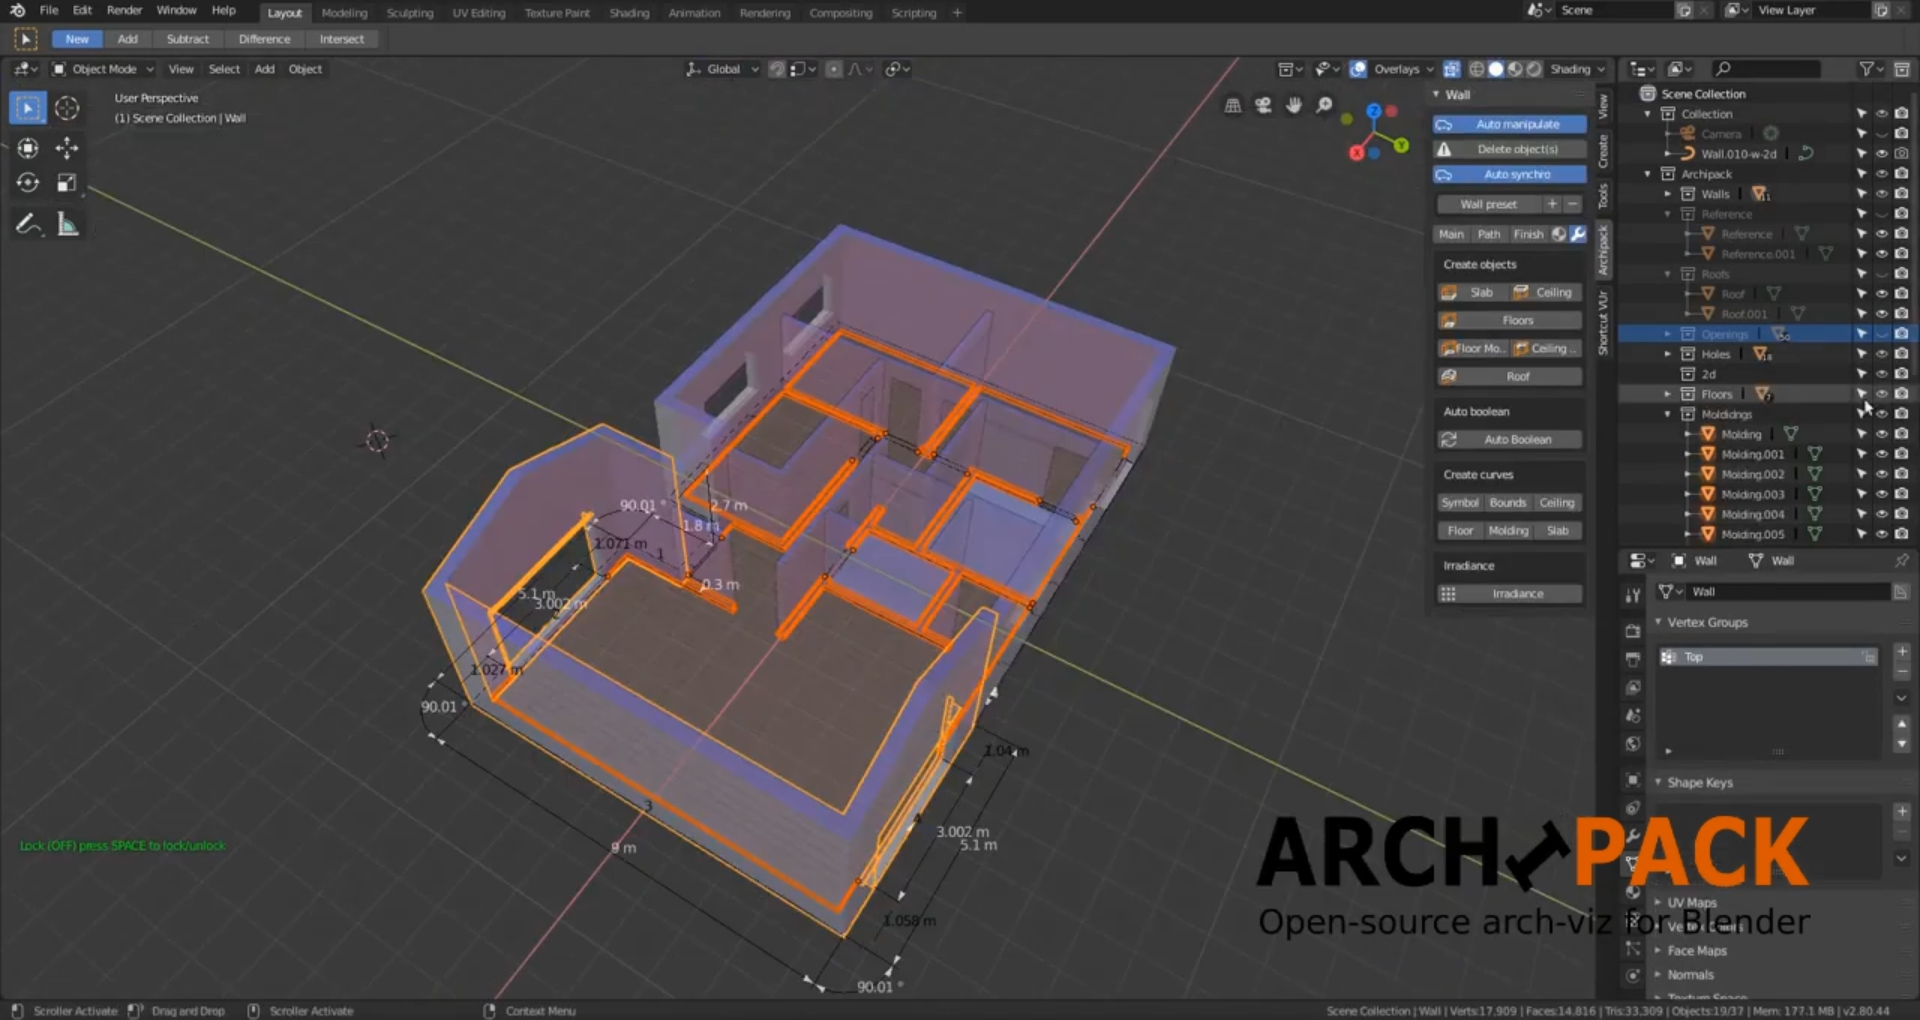 Archipack for Blender